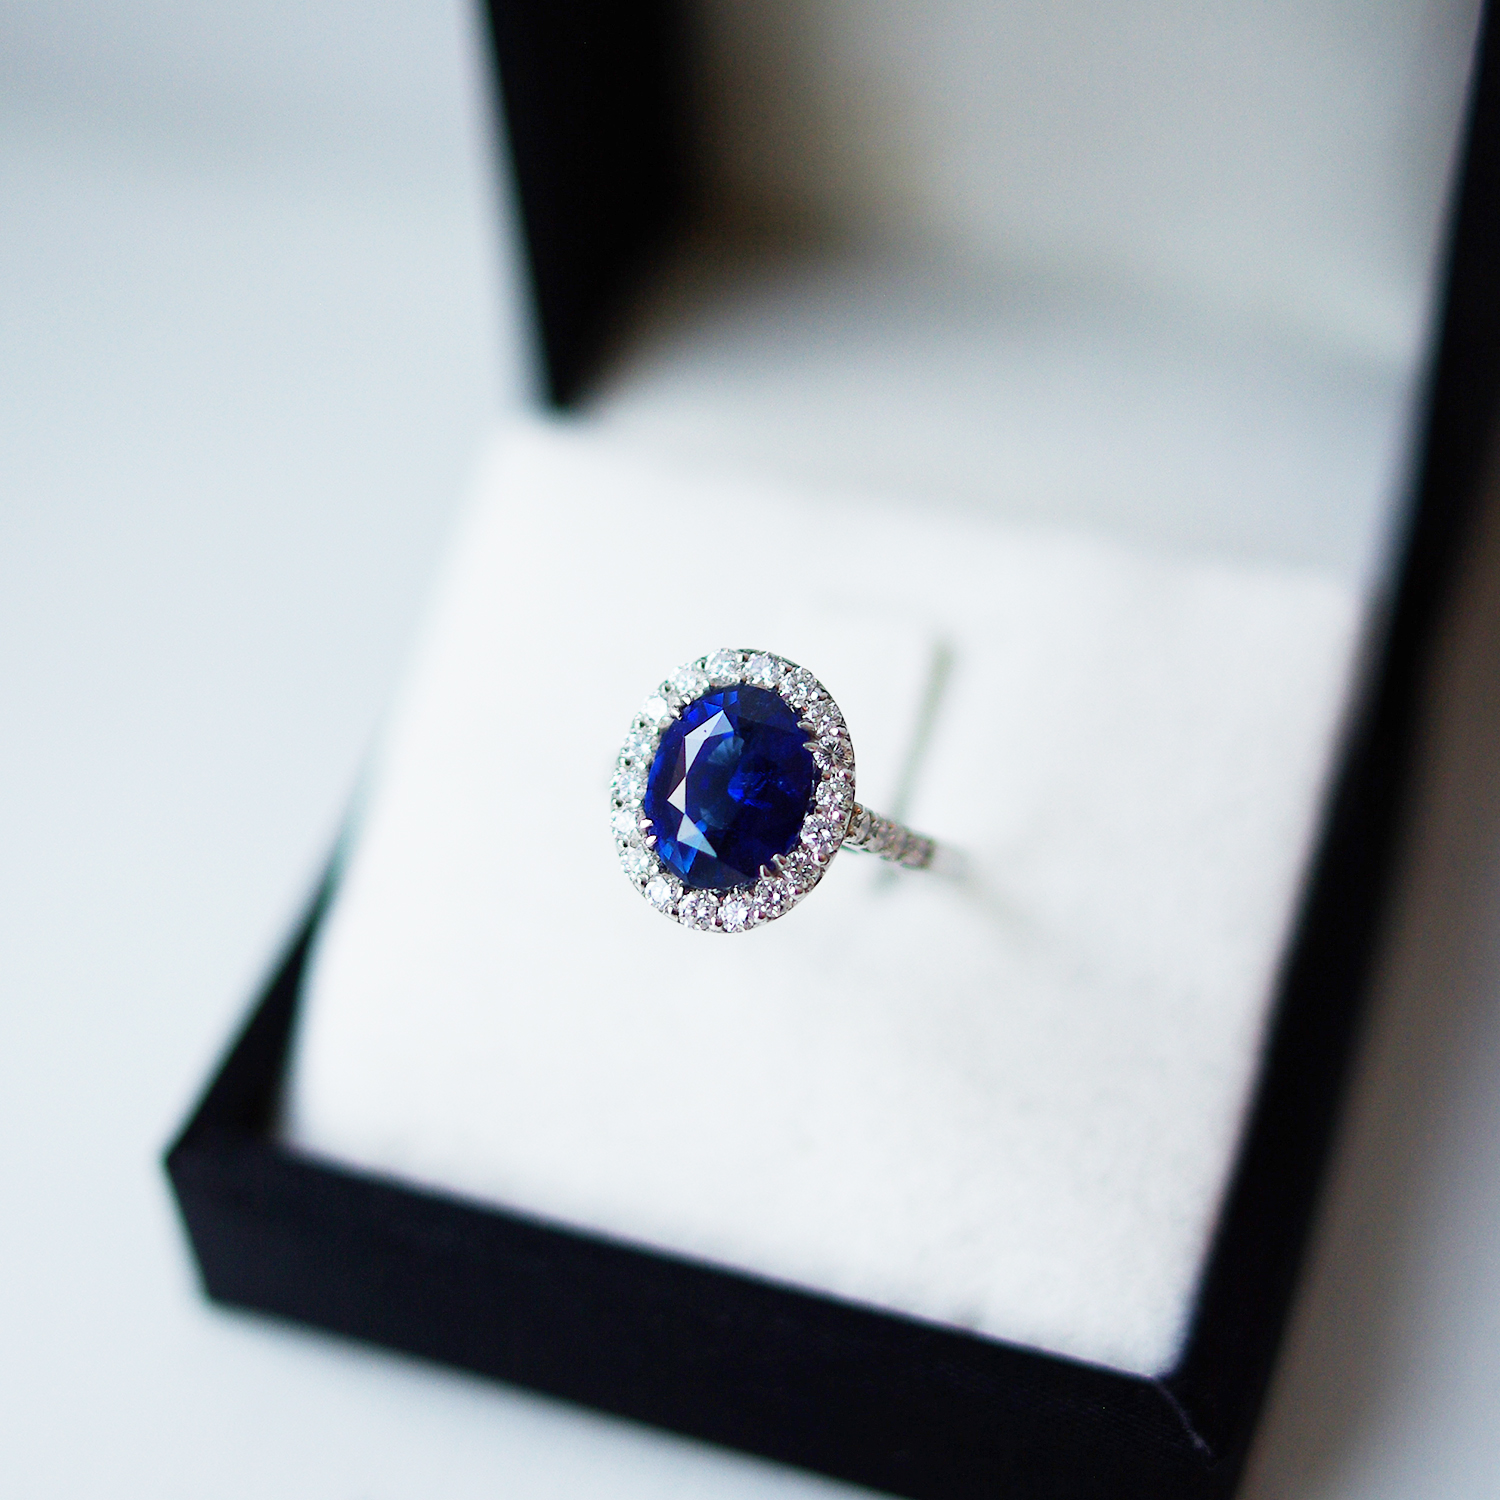 Oval Sapphire Cluster Ring With Diamond Set Shoulders